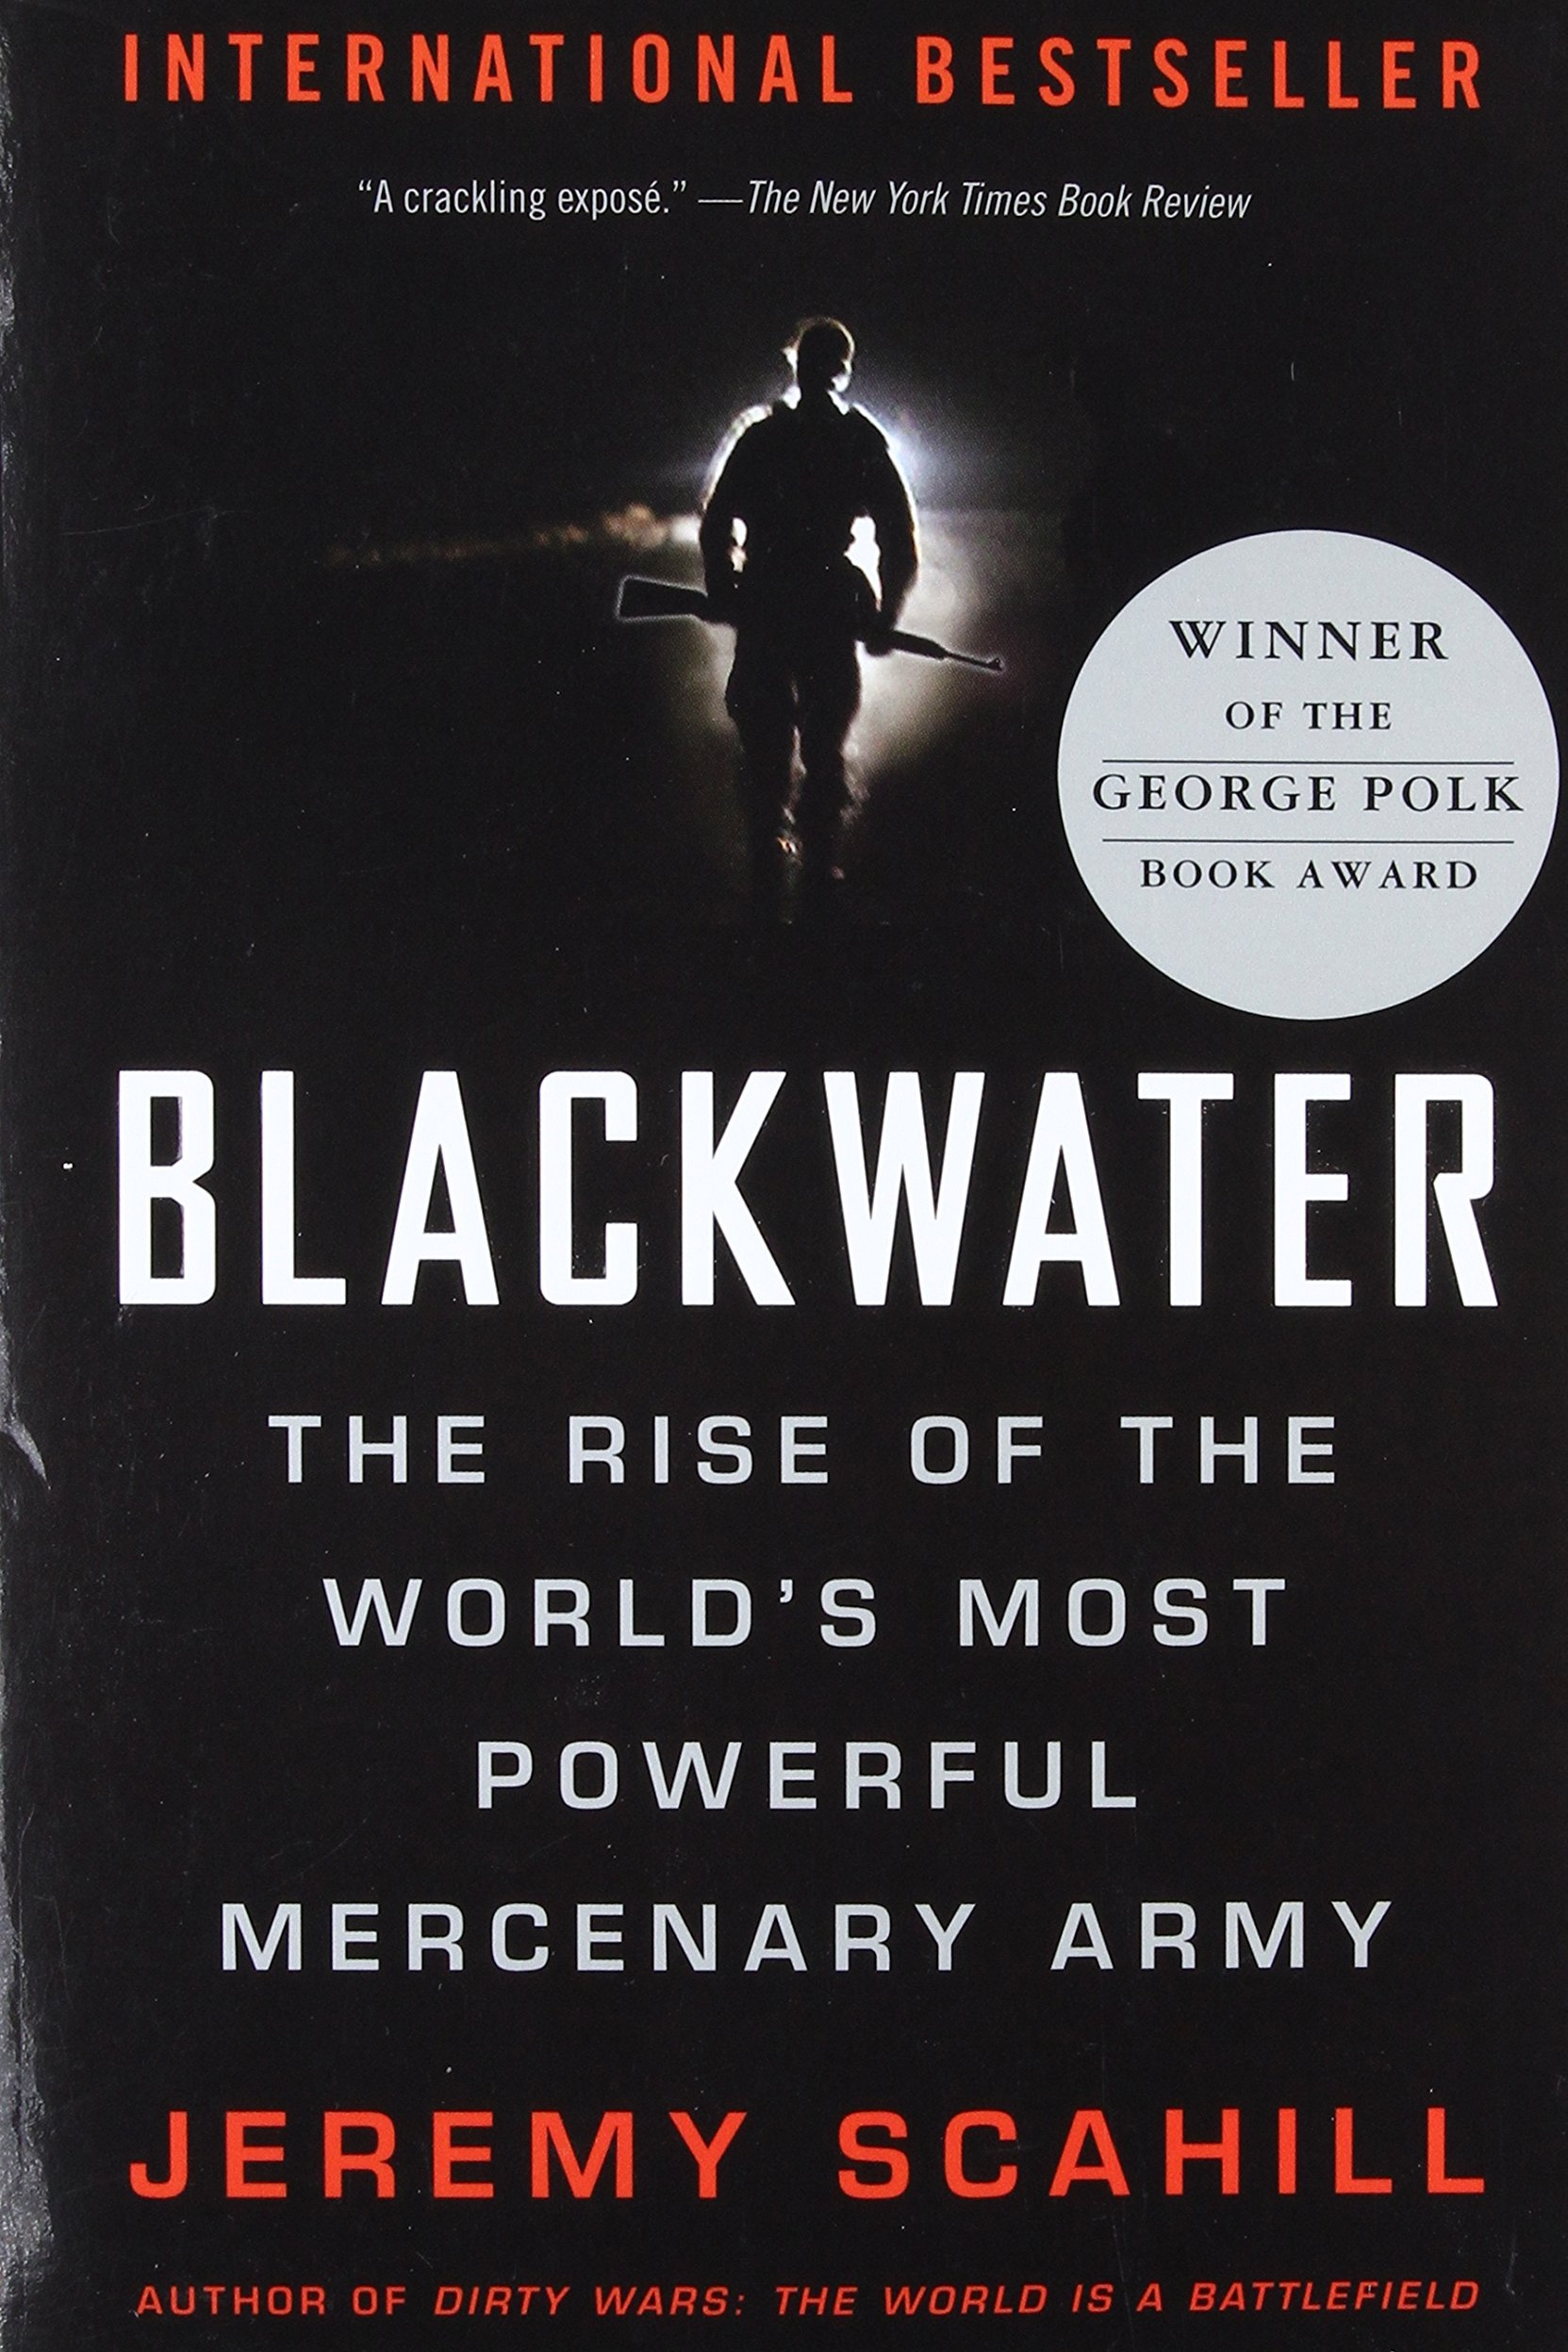 Blackwater - Jeremy Scahill